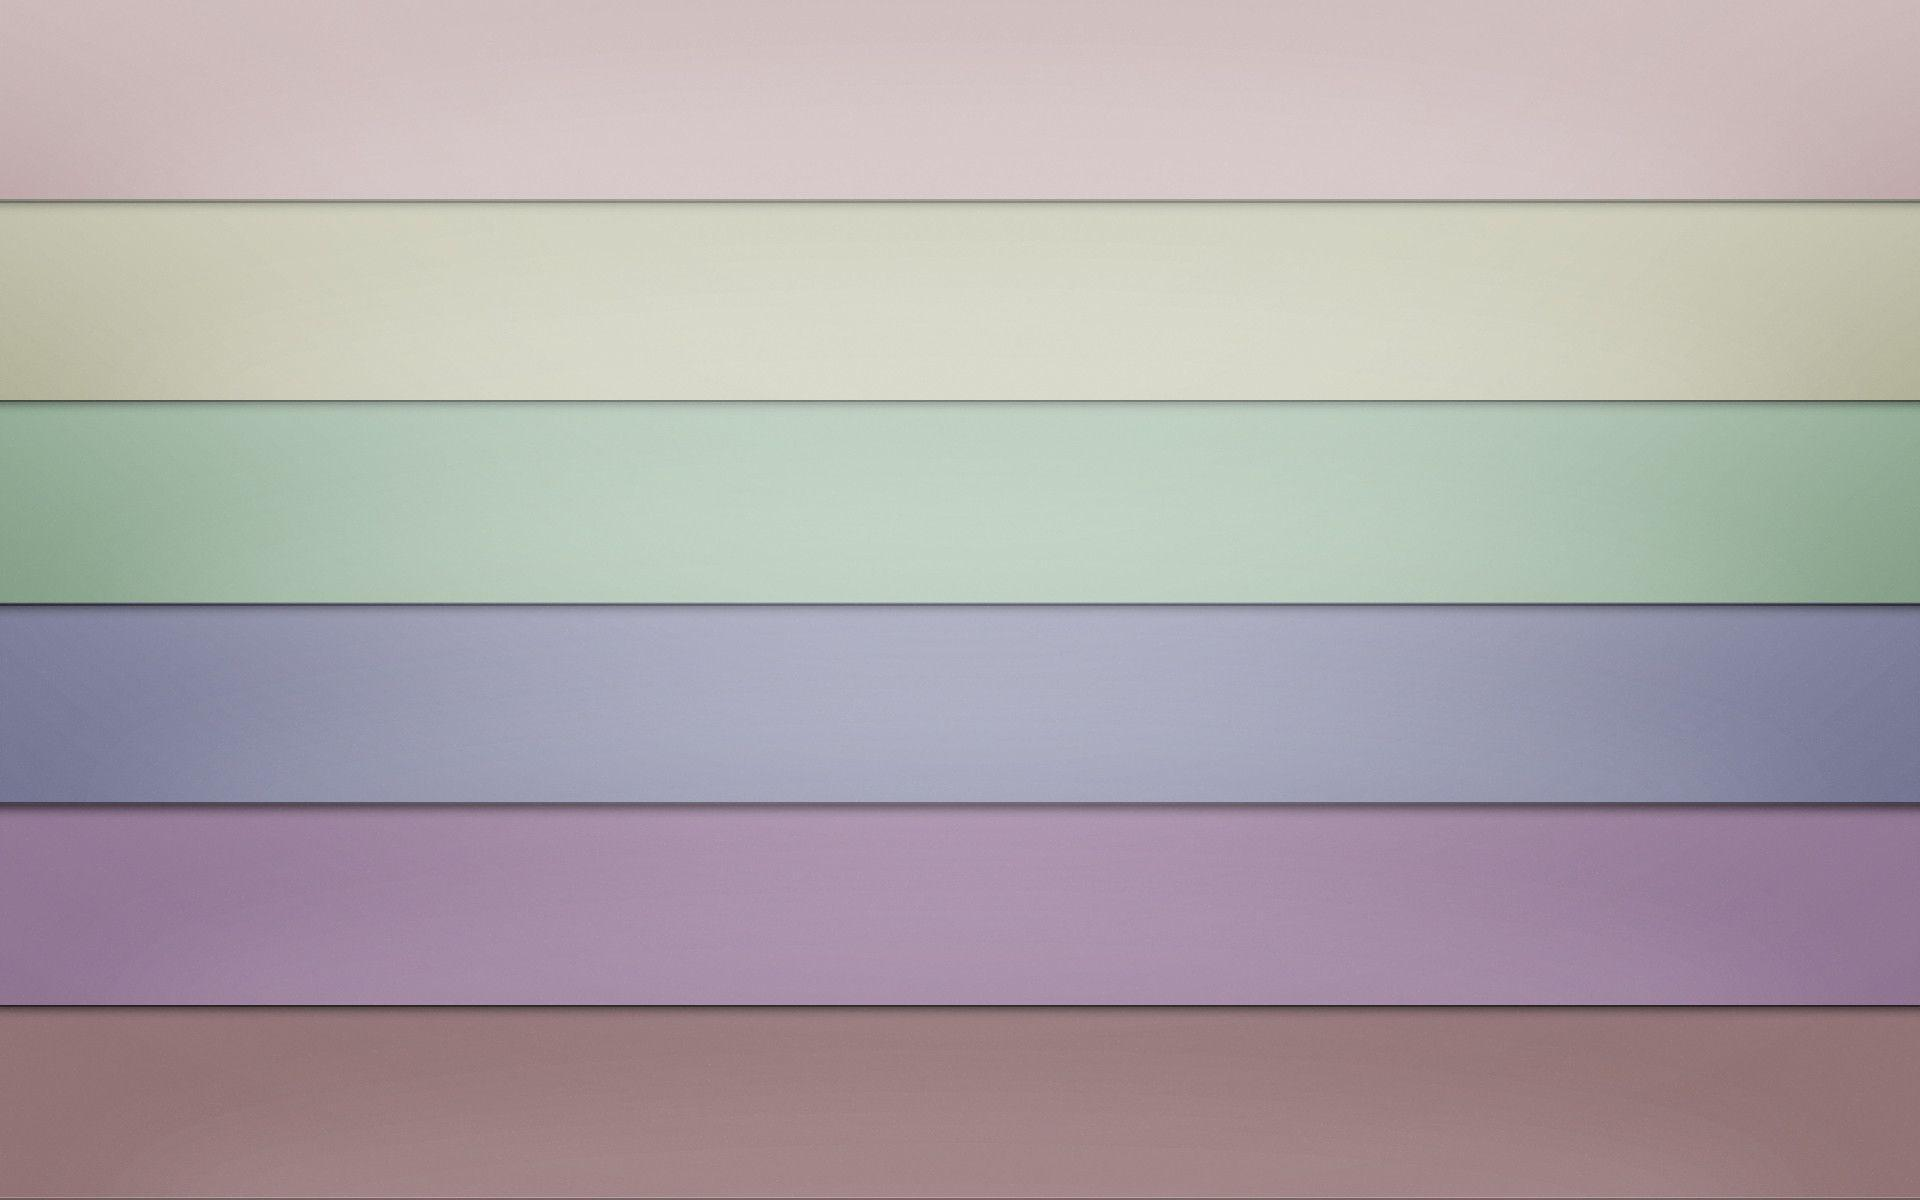 Pastel Wallpapers - Full HD wallpaper search - page 3